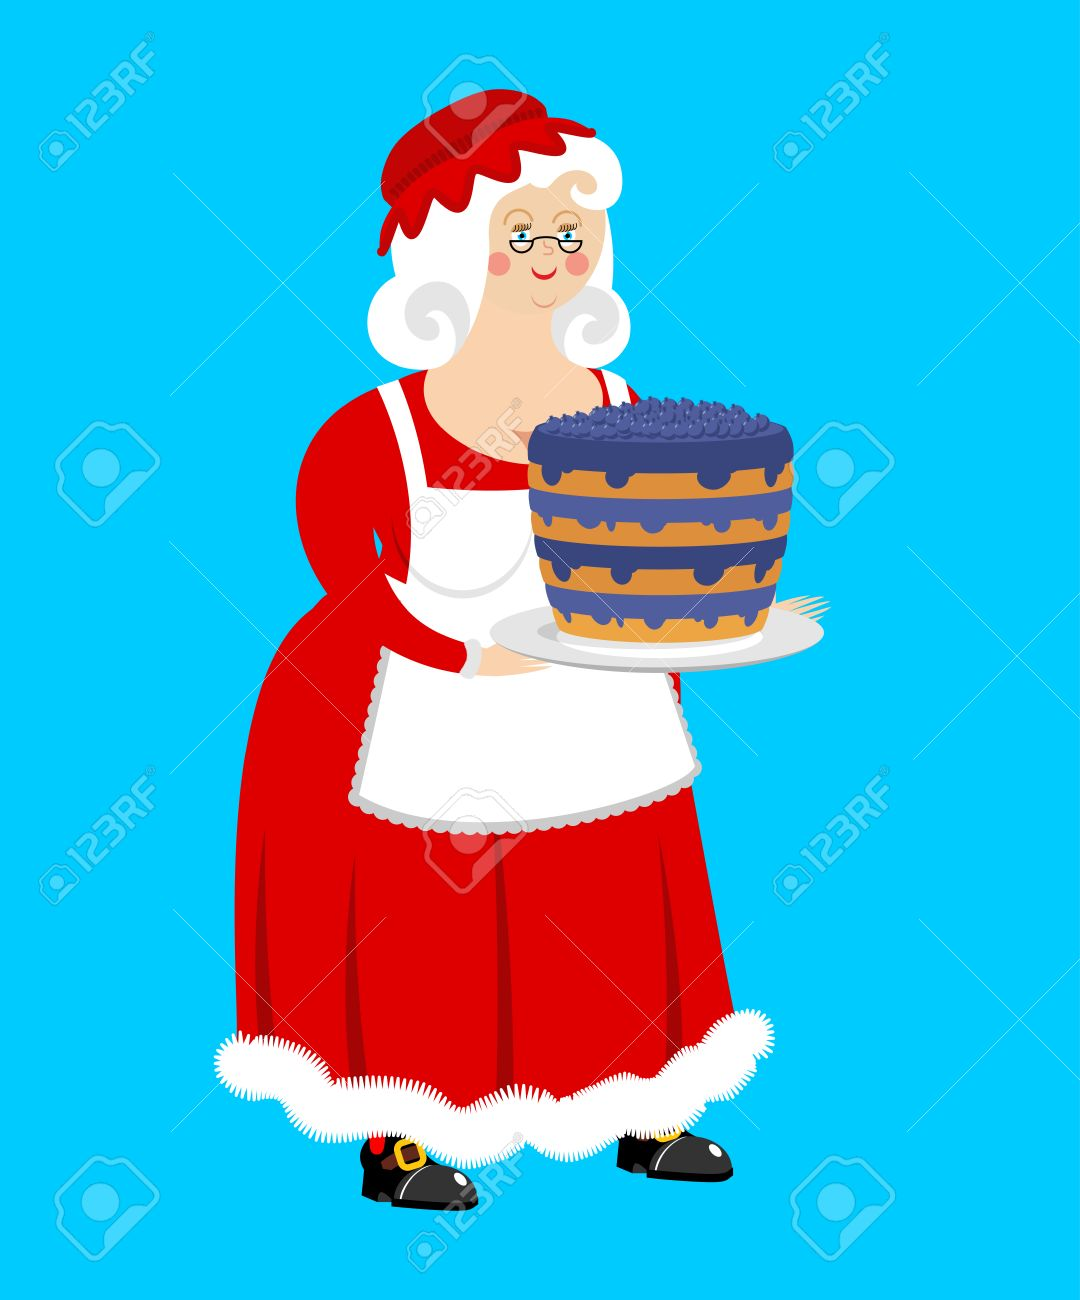 mrs claus and blueberry cake wife of santa claus and dessert rh 123rf com mrs. claus clipart black and white mrs santa claus clipart